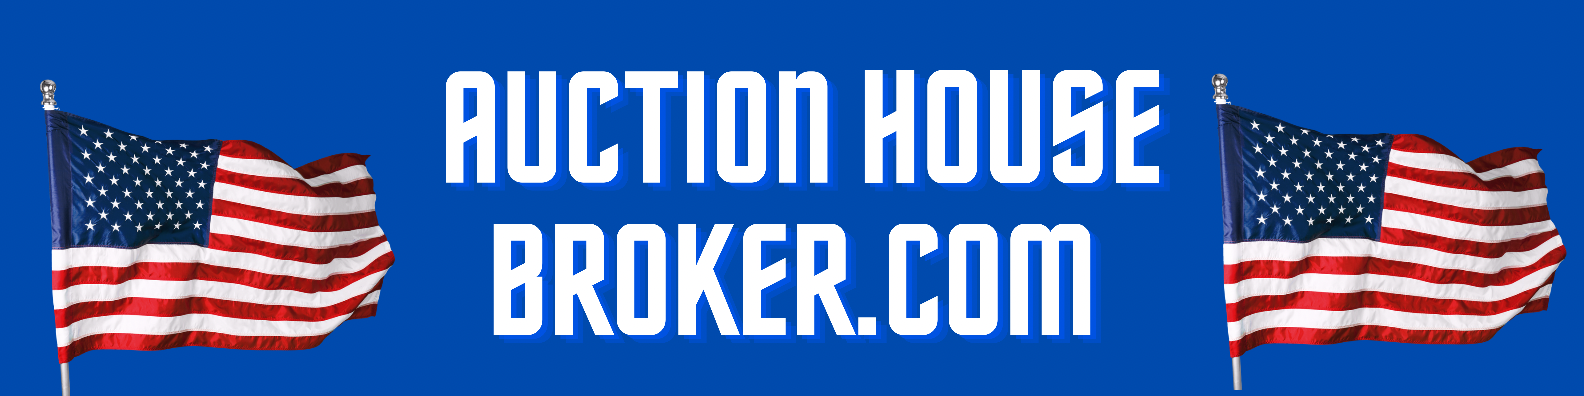 auctionhousebroker.com